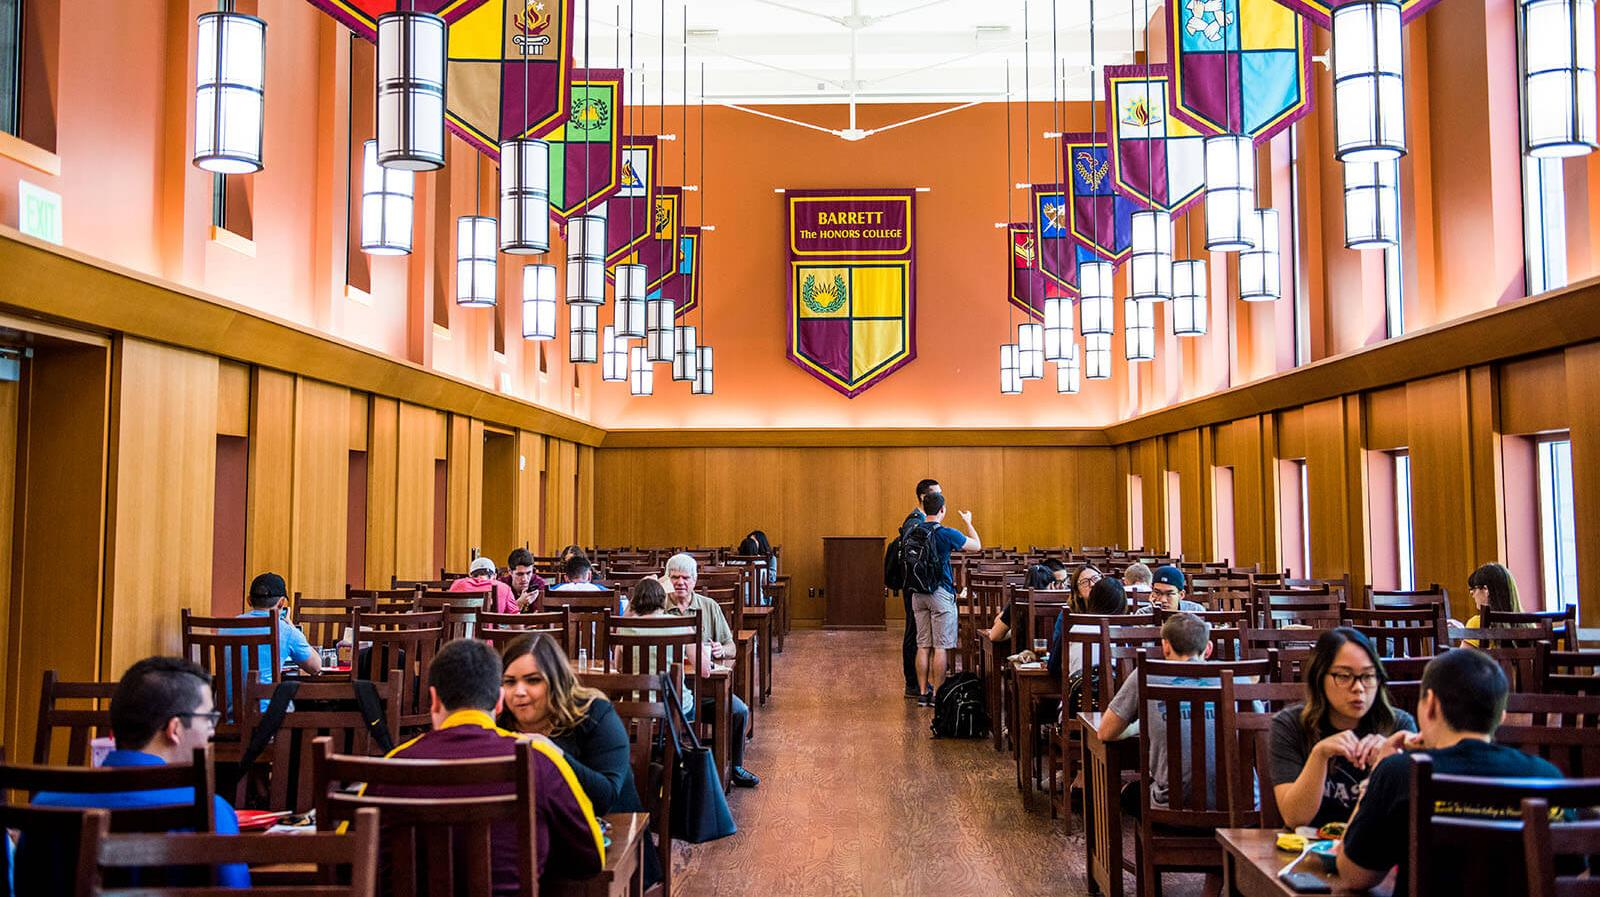 The dining hall at Barrett, The Honors College